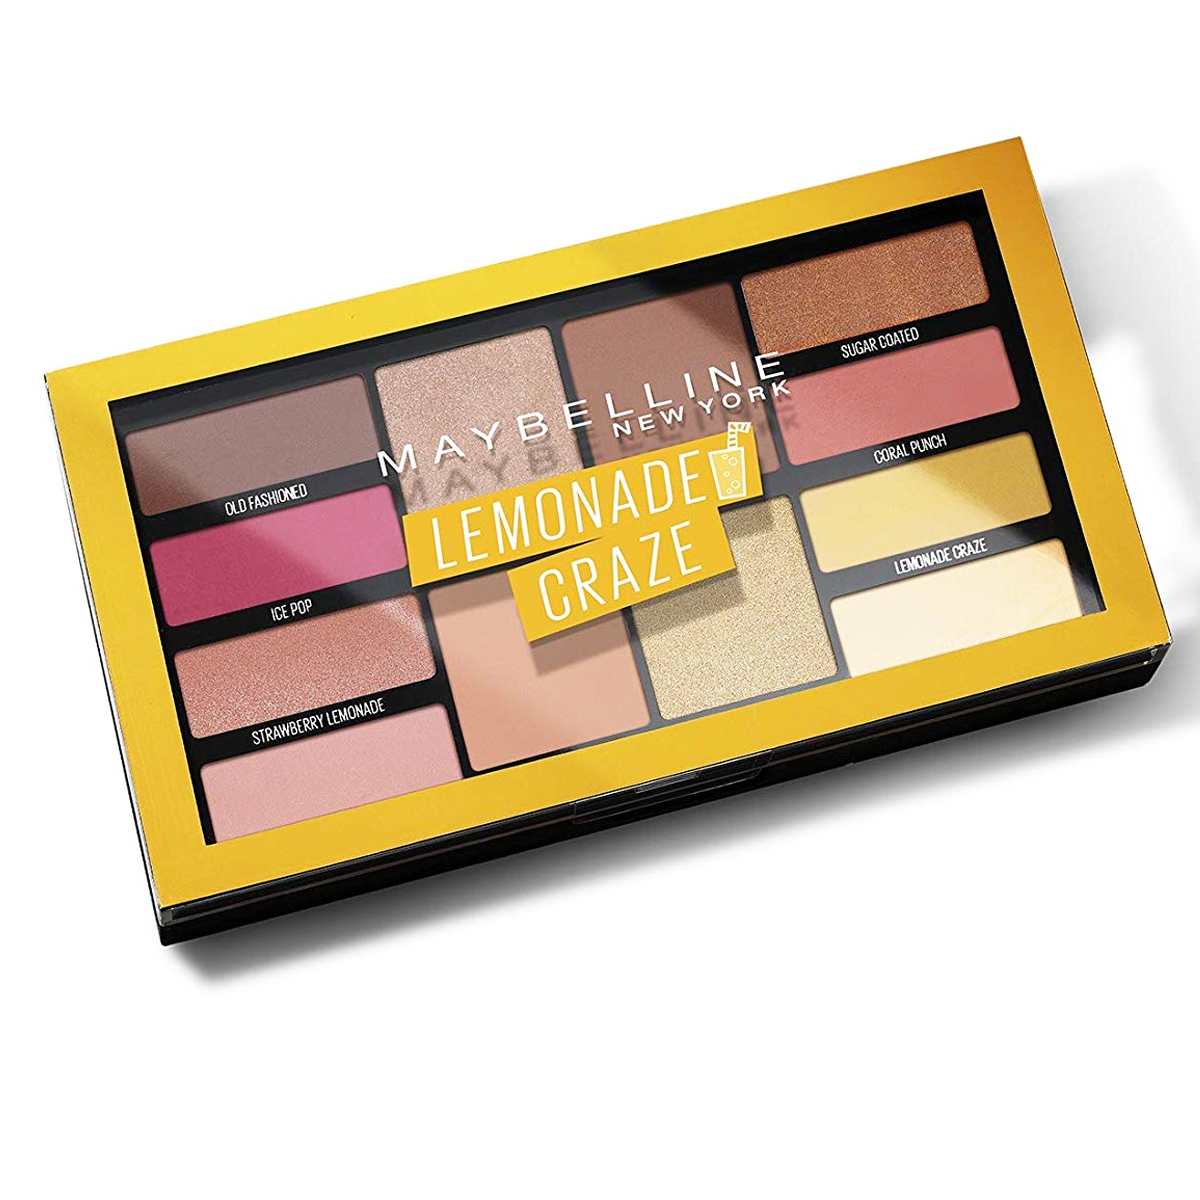 Maybelline Lemonade Craze Far Paleti